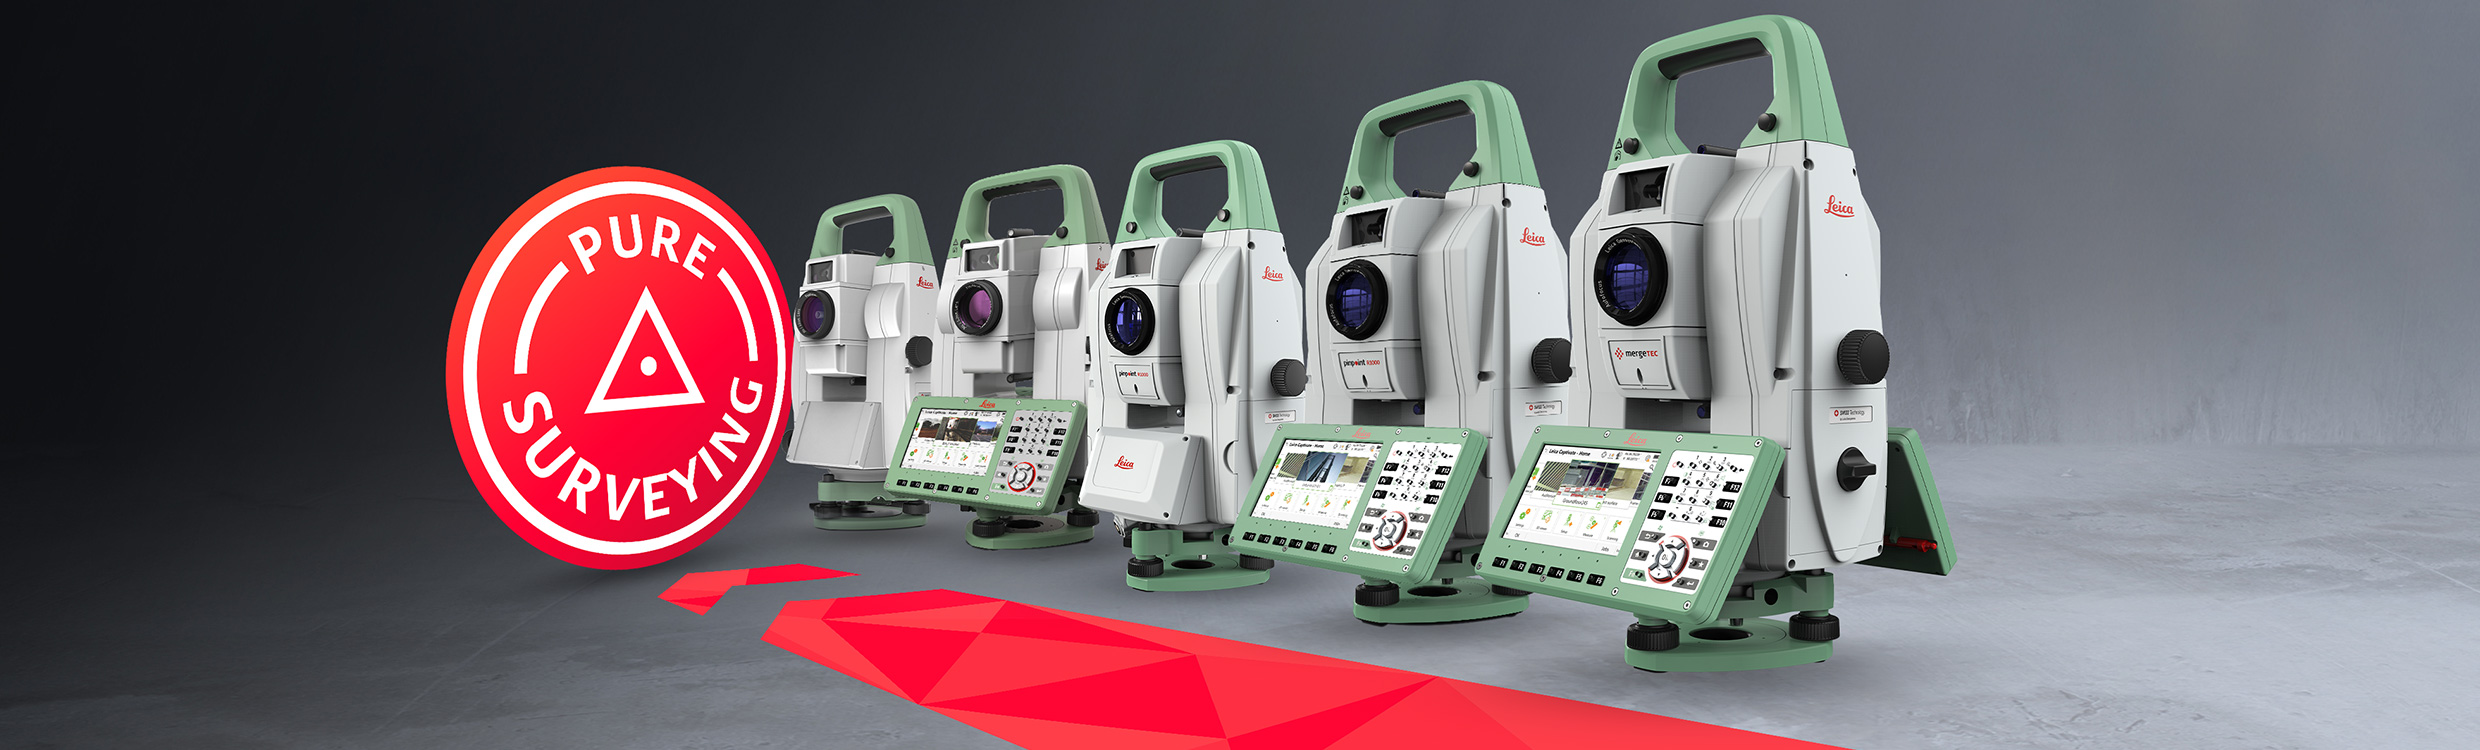 New automated total station portfolio